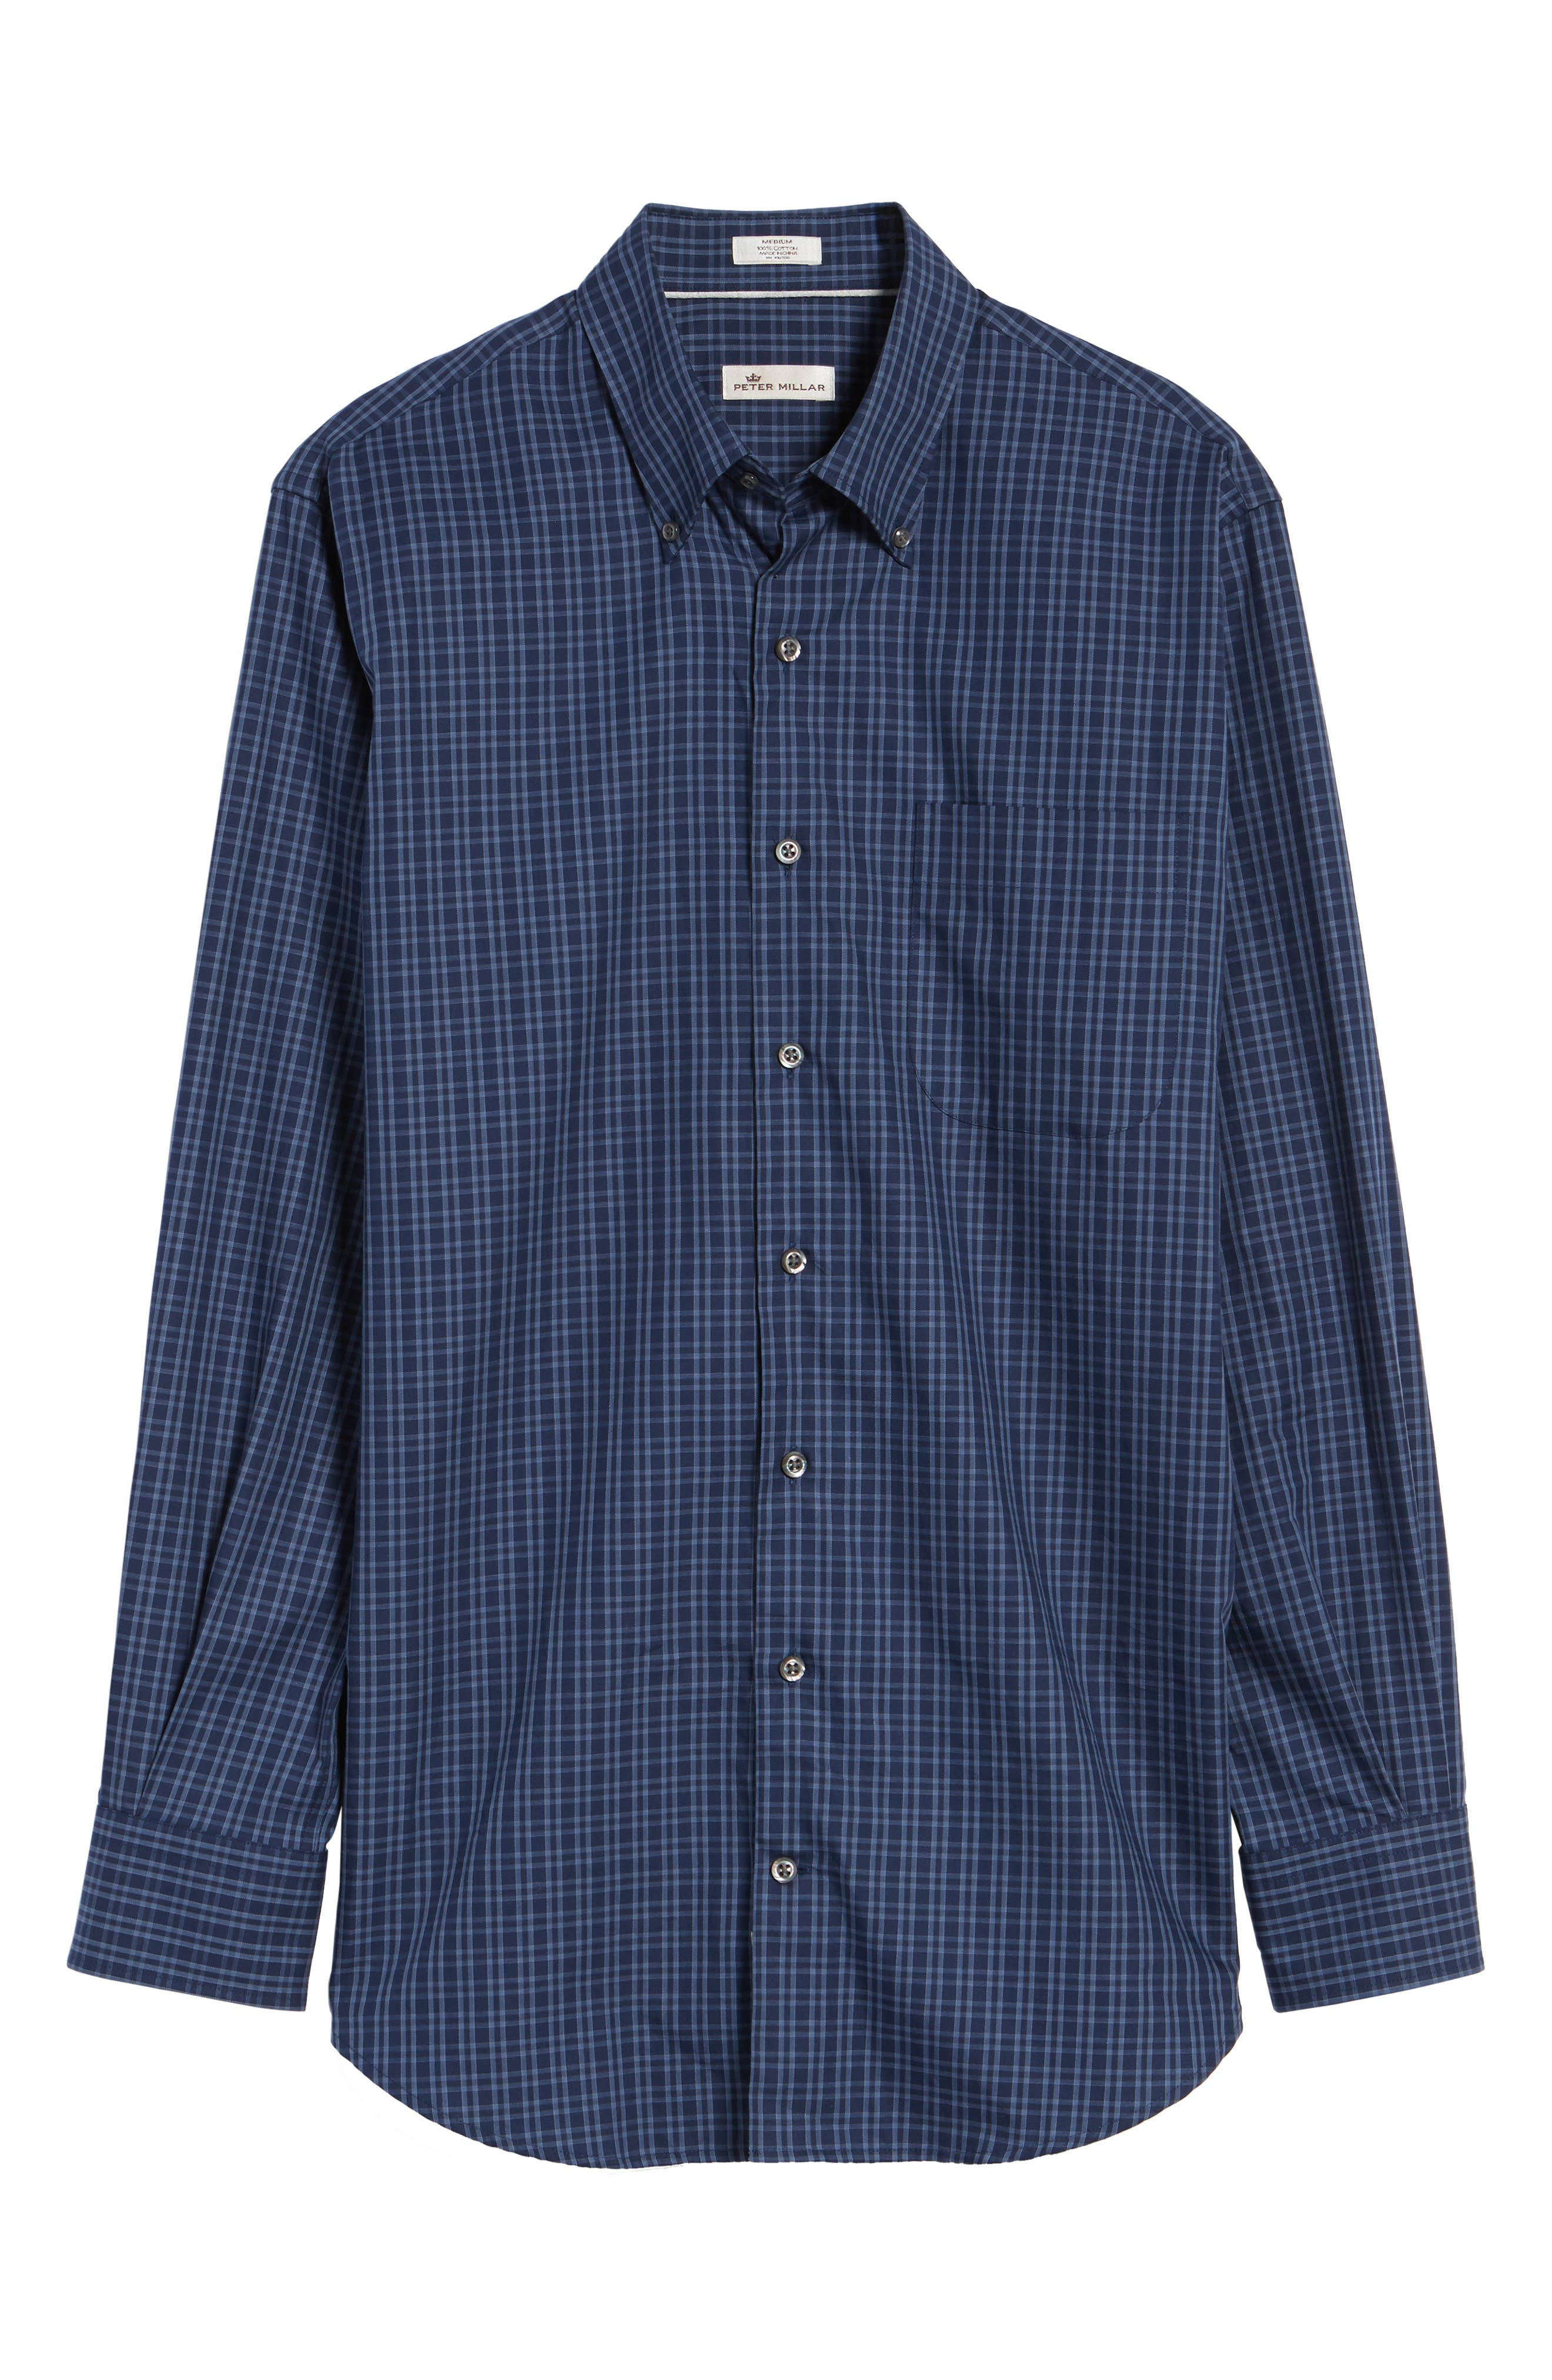 Autumn Check Regular Fit Sport Shirt,                             Alternate thumbnail 6, color,                             Seaboard Navy